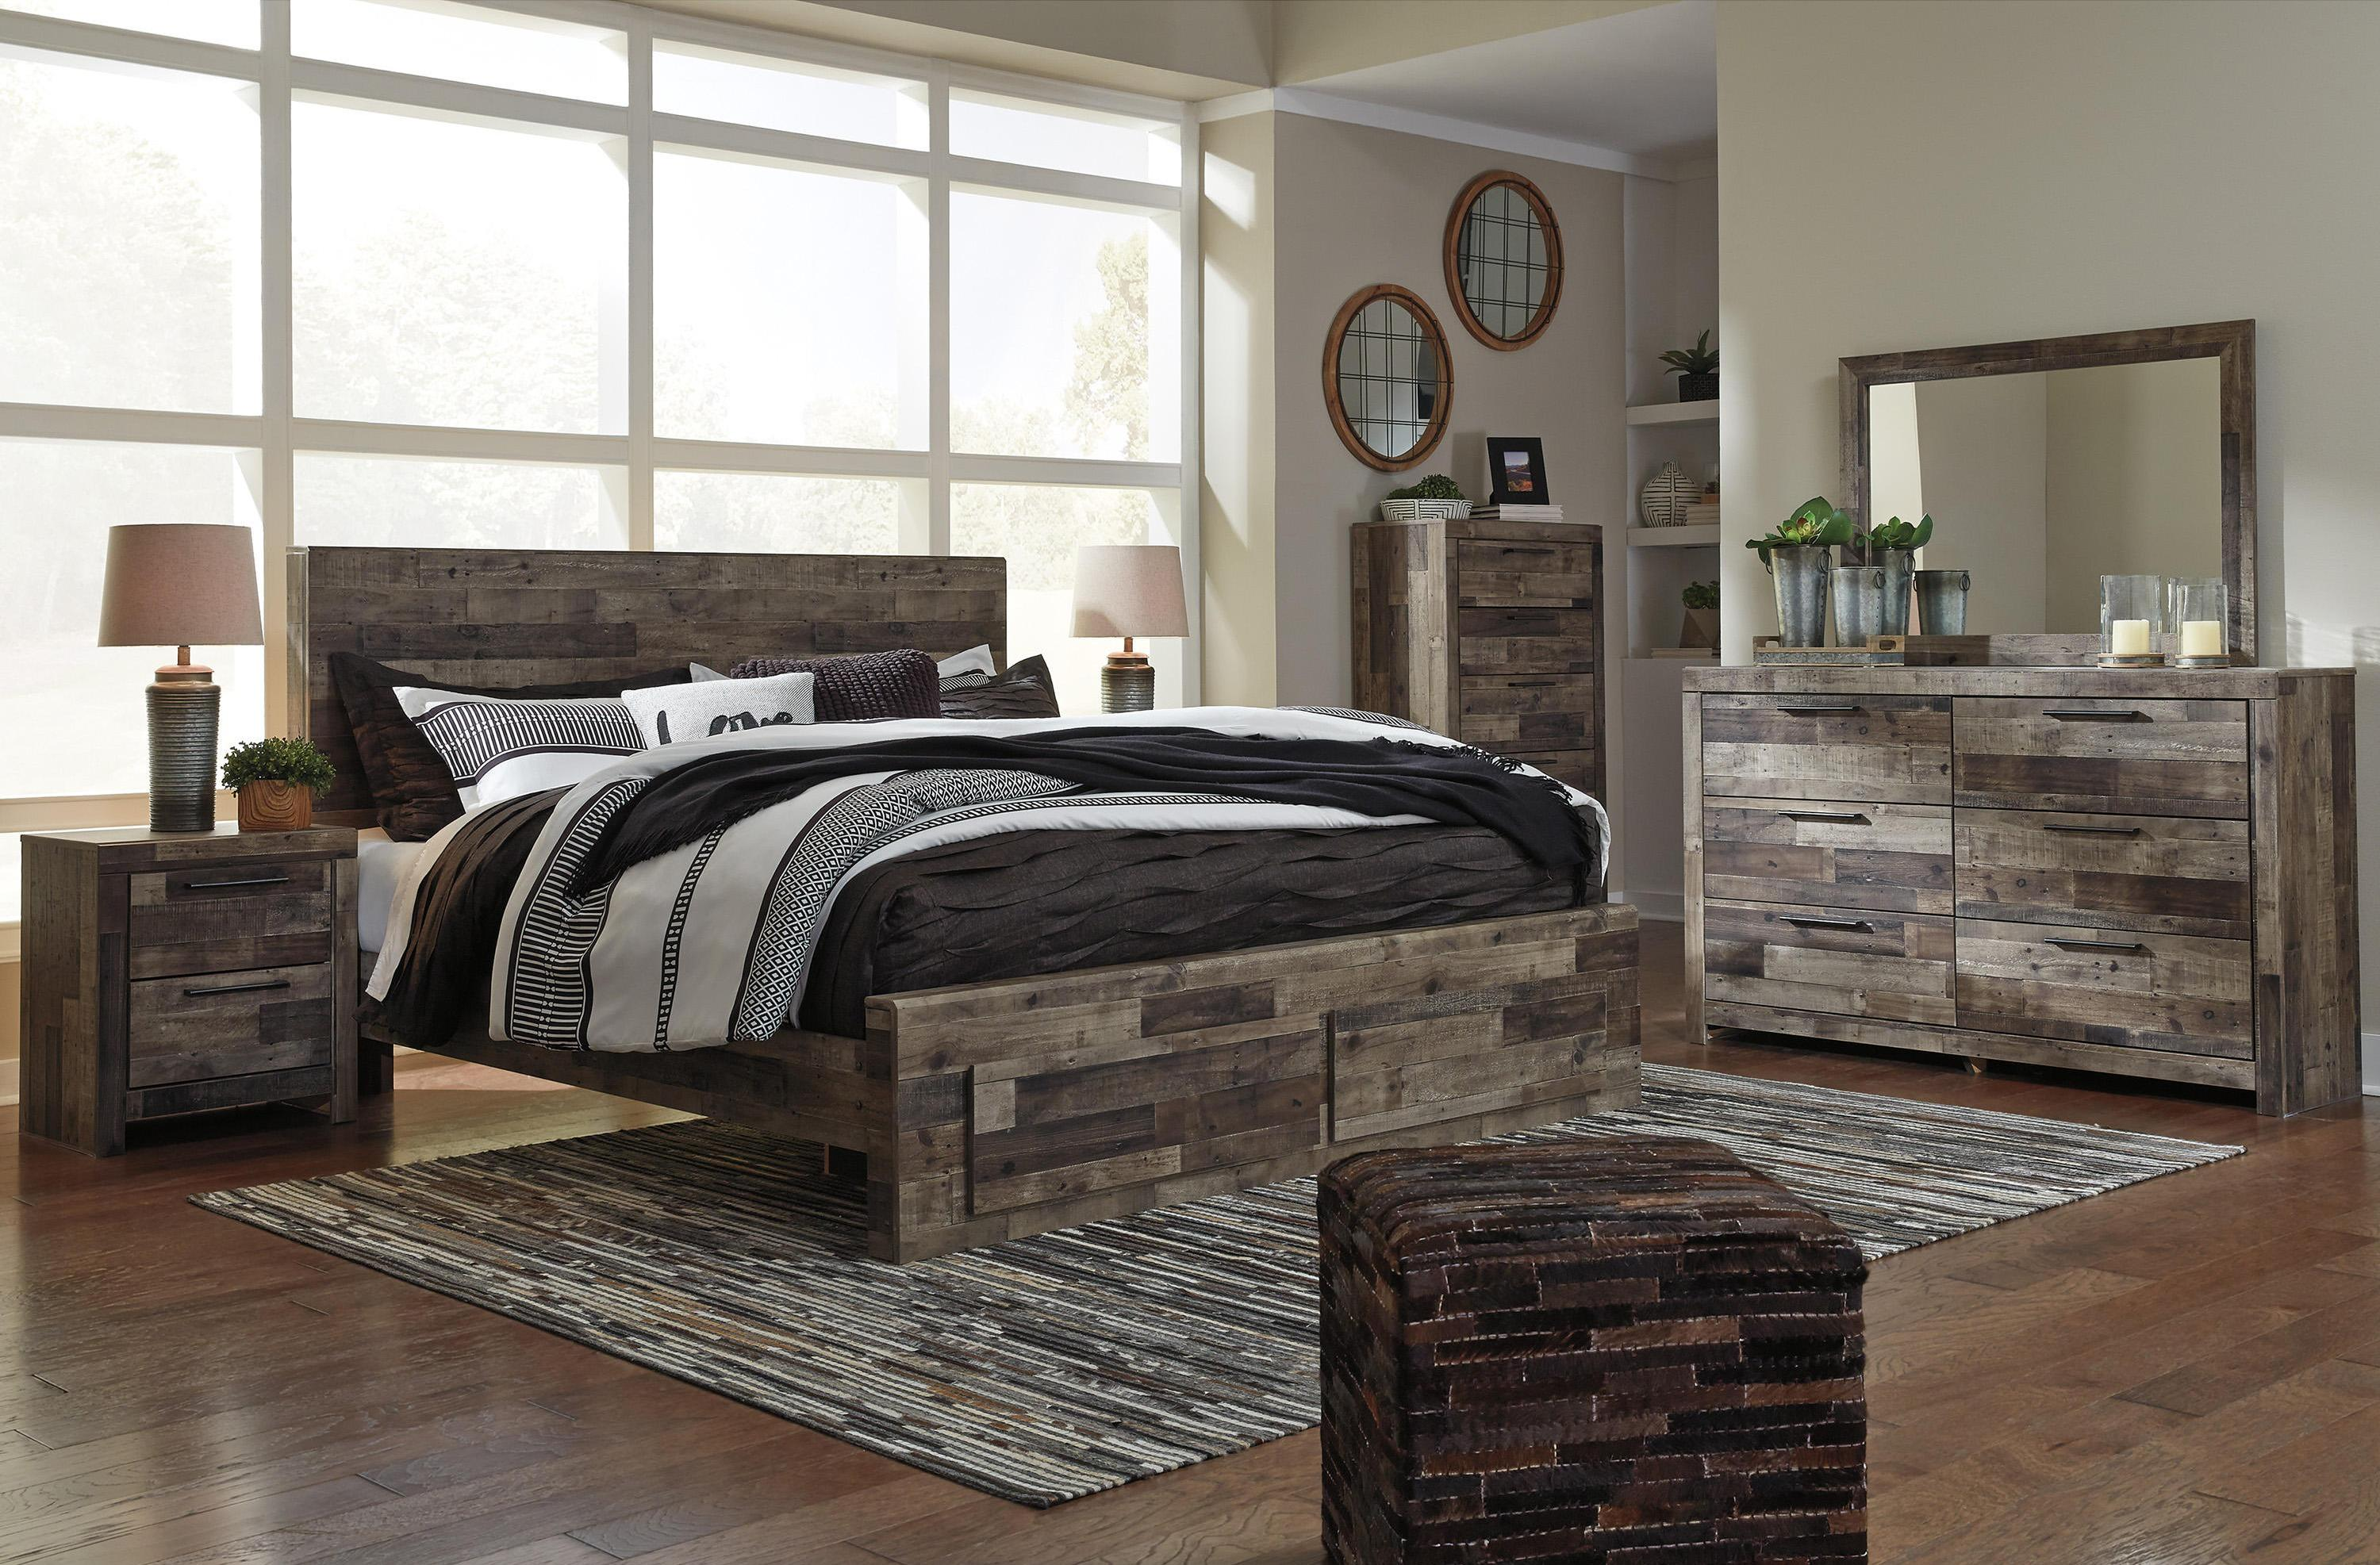 Raymour & Flanigan Furniture and Mattress Outlet image 1